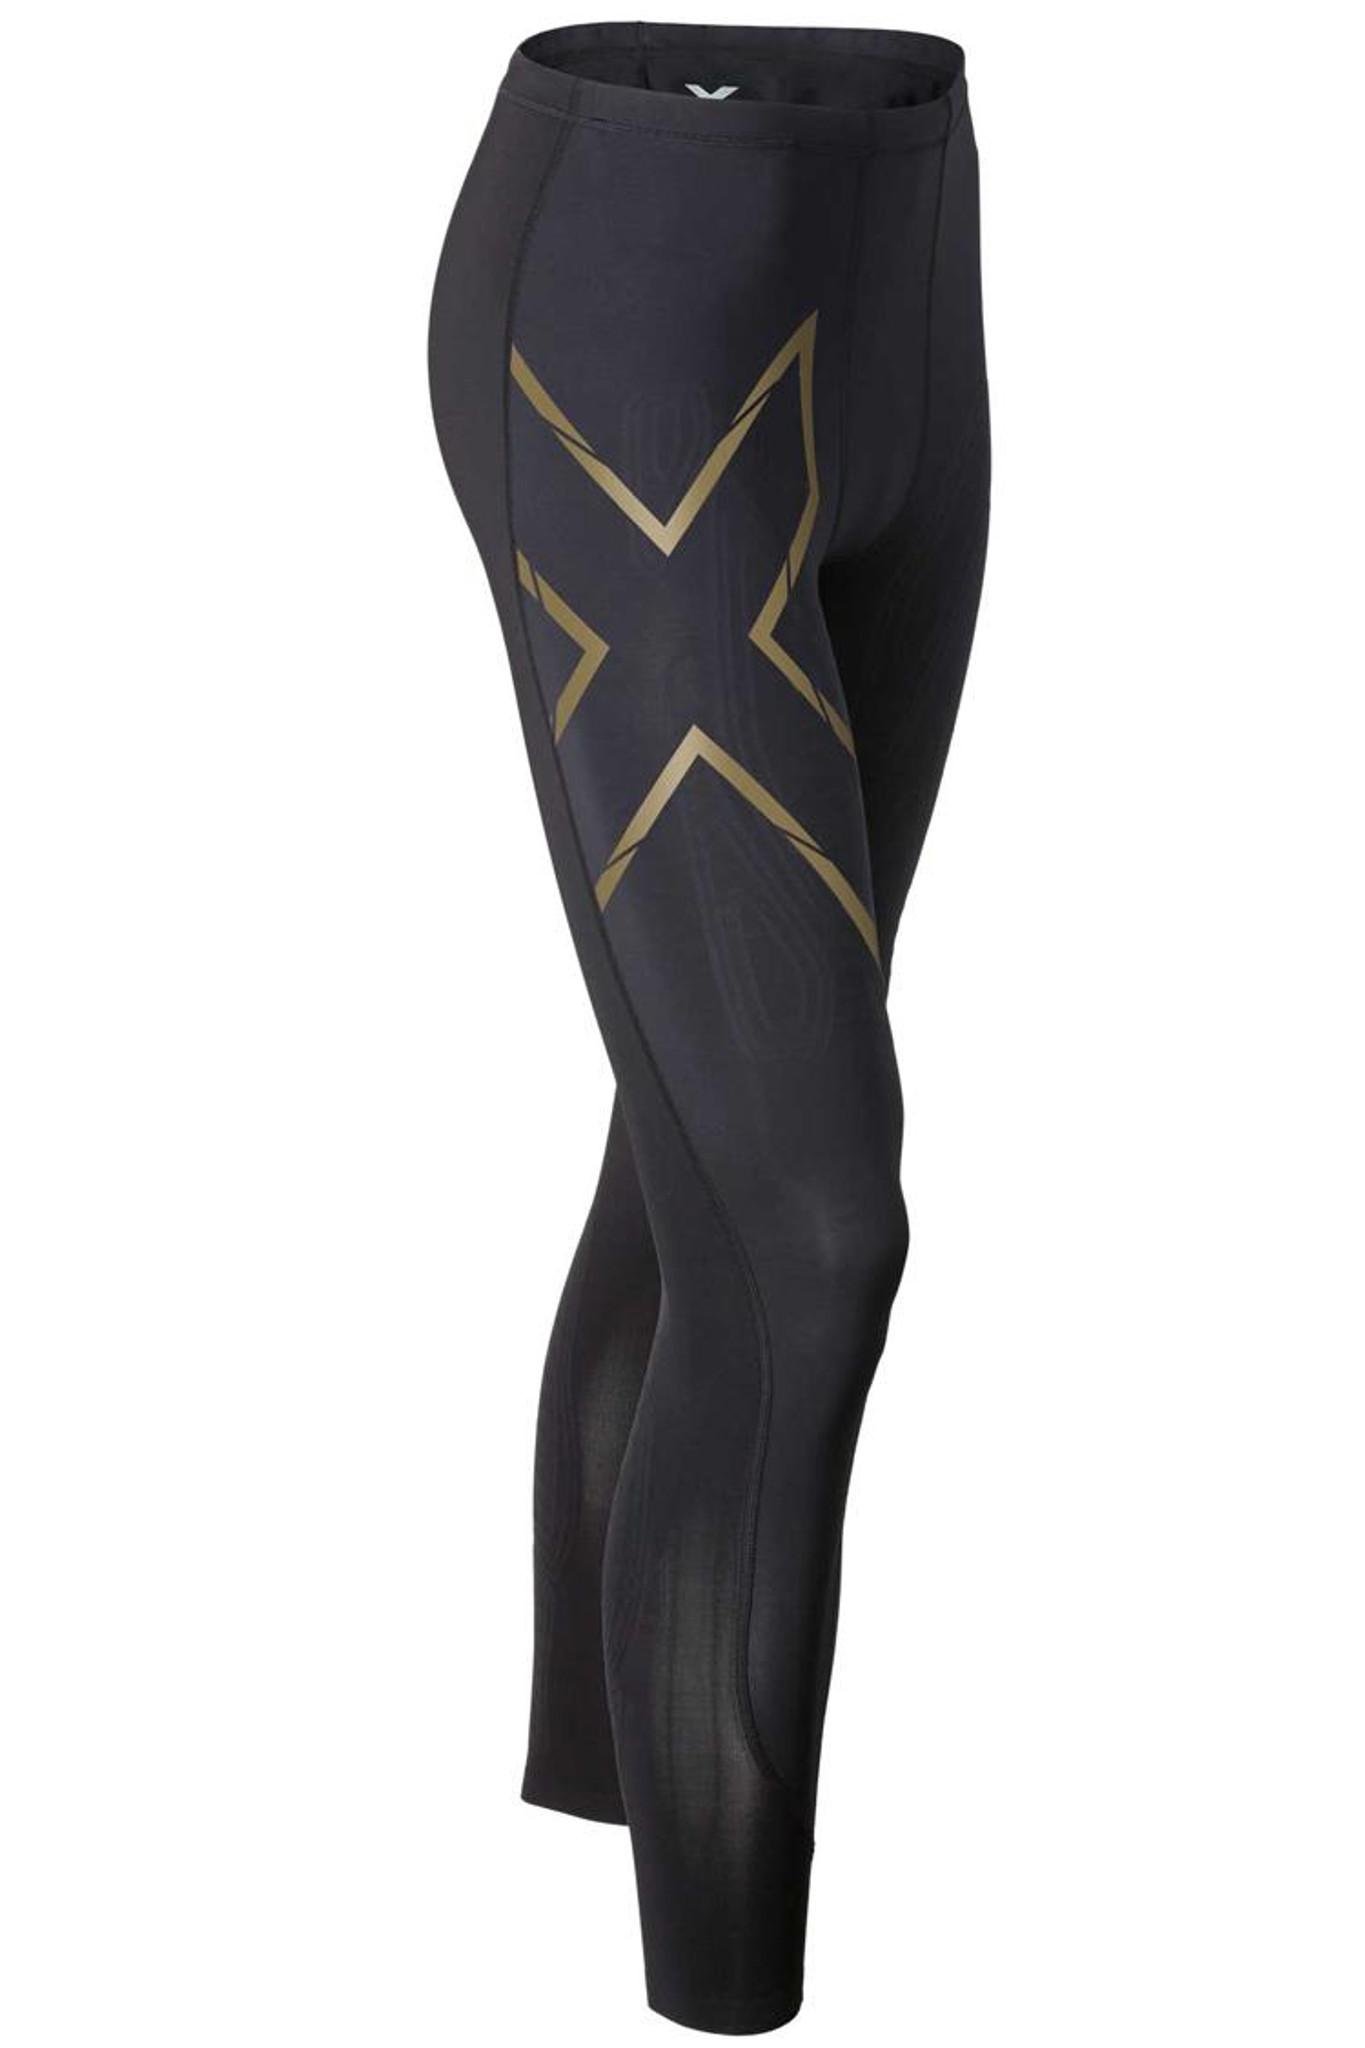 8a3ed50eb5fc8 2XU - Men's Elite MCS Compression Tights - Black/ Gold